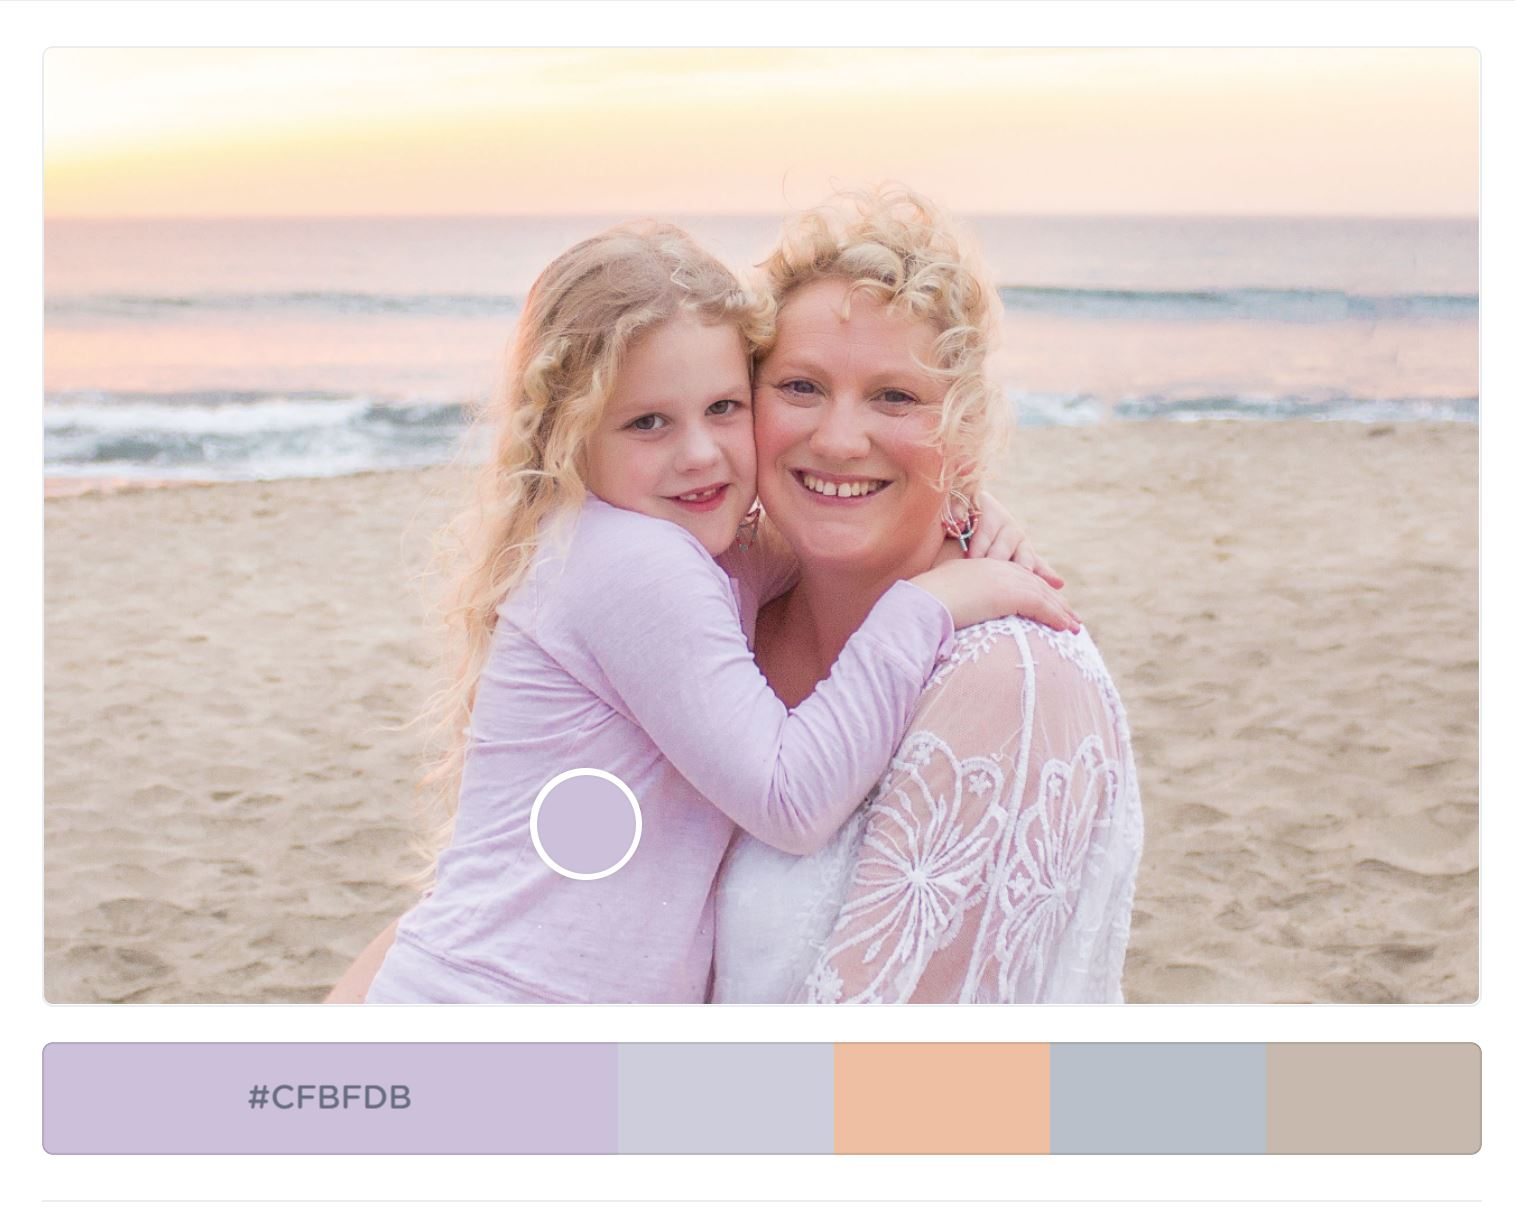 pastel colour scheme for beach photo shoot